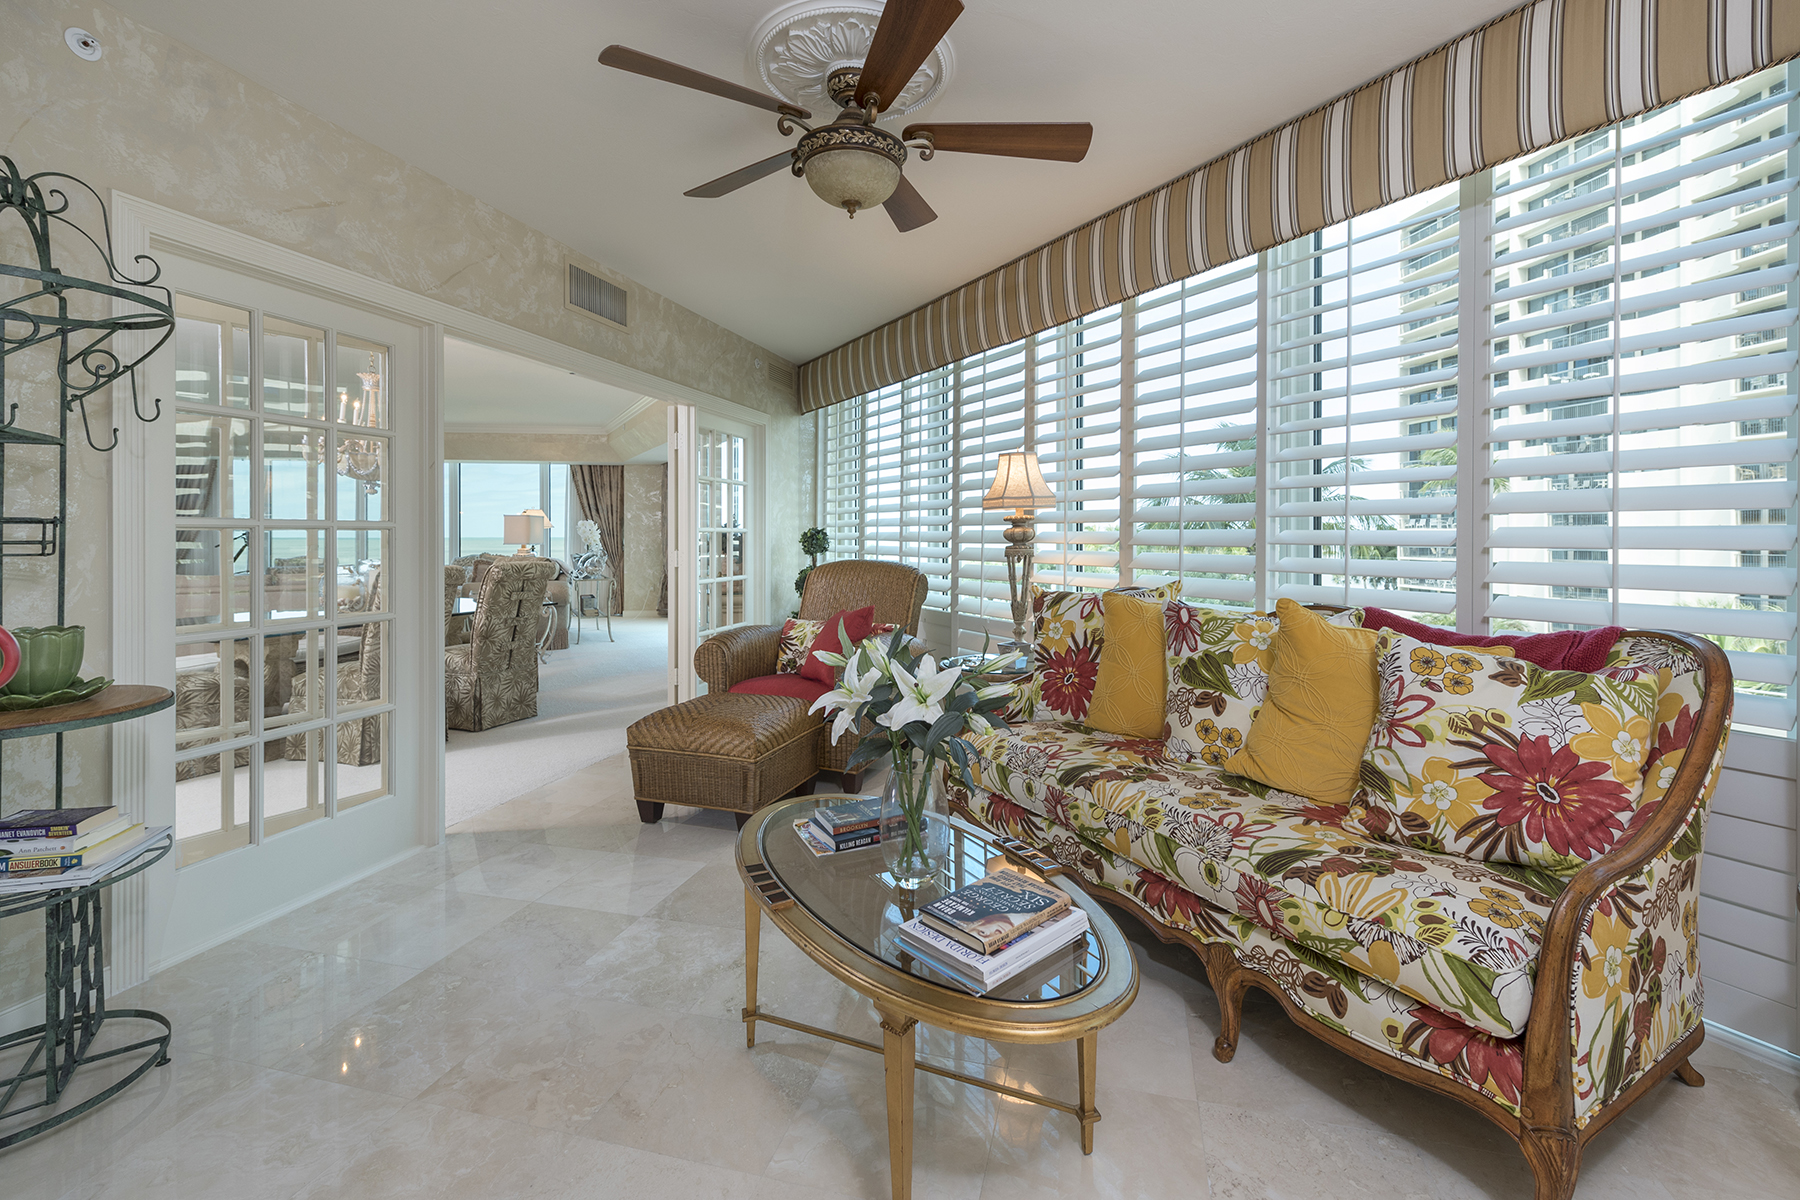 Additional photo for property listing at PARK SHORE - LE CIEL PARK TOWER 3991  Gulf Shore Blvd  N 204,  Naples, Florida 34103 United States